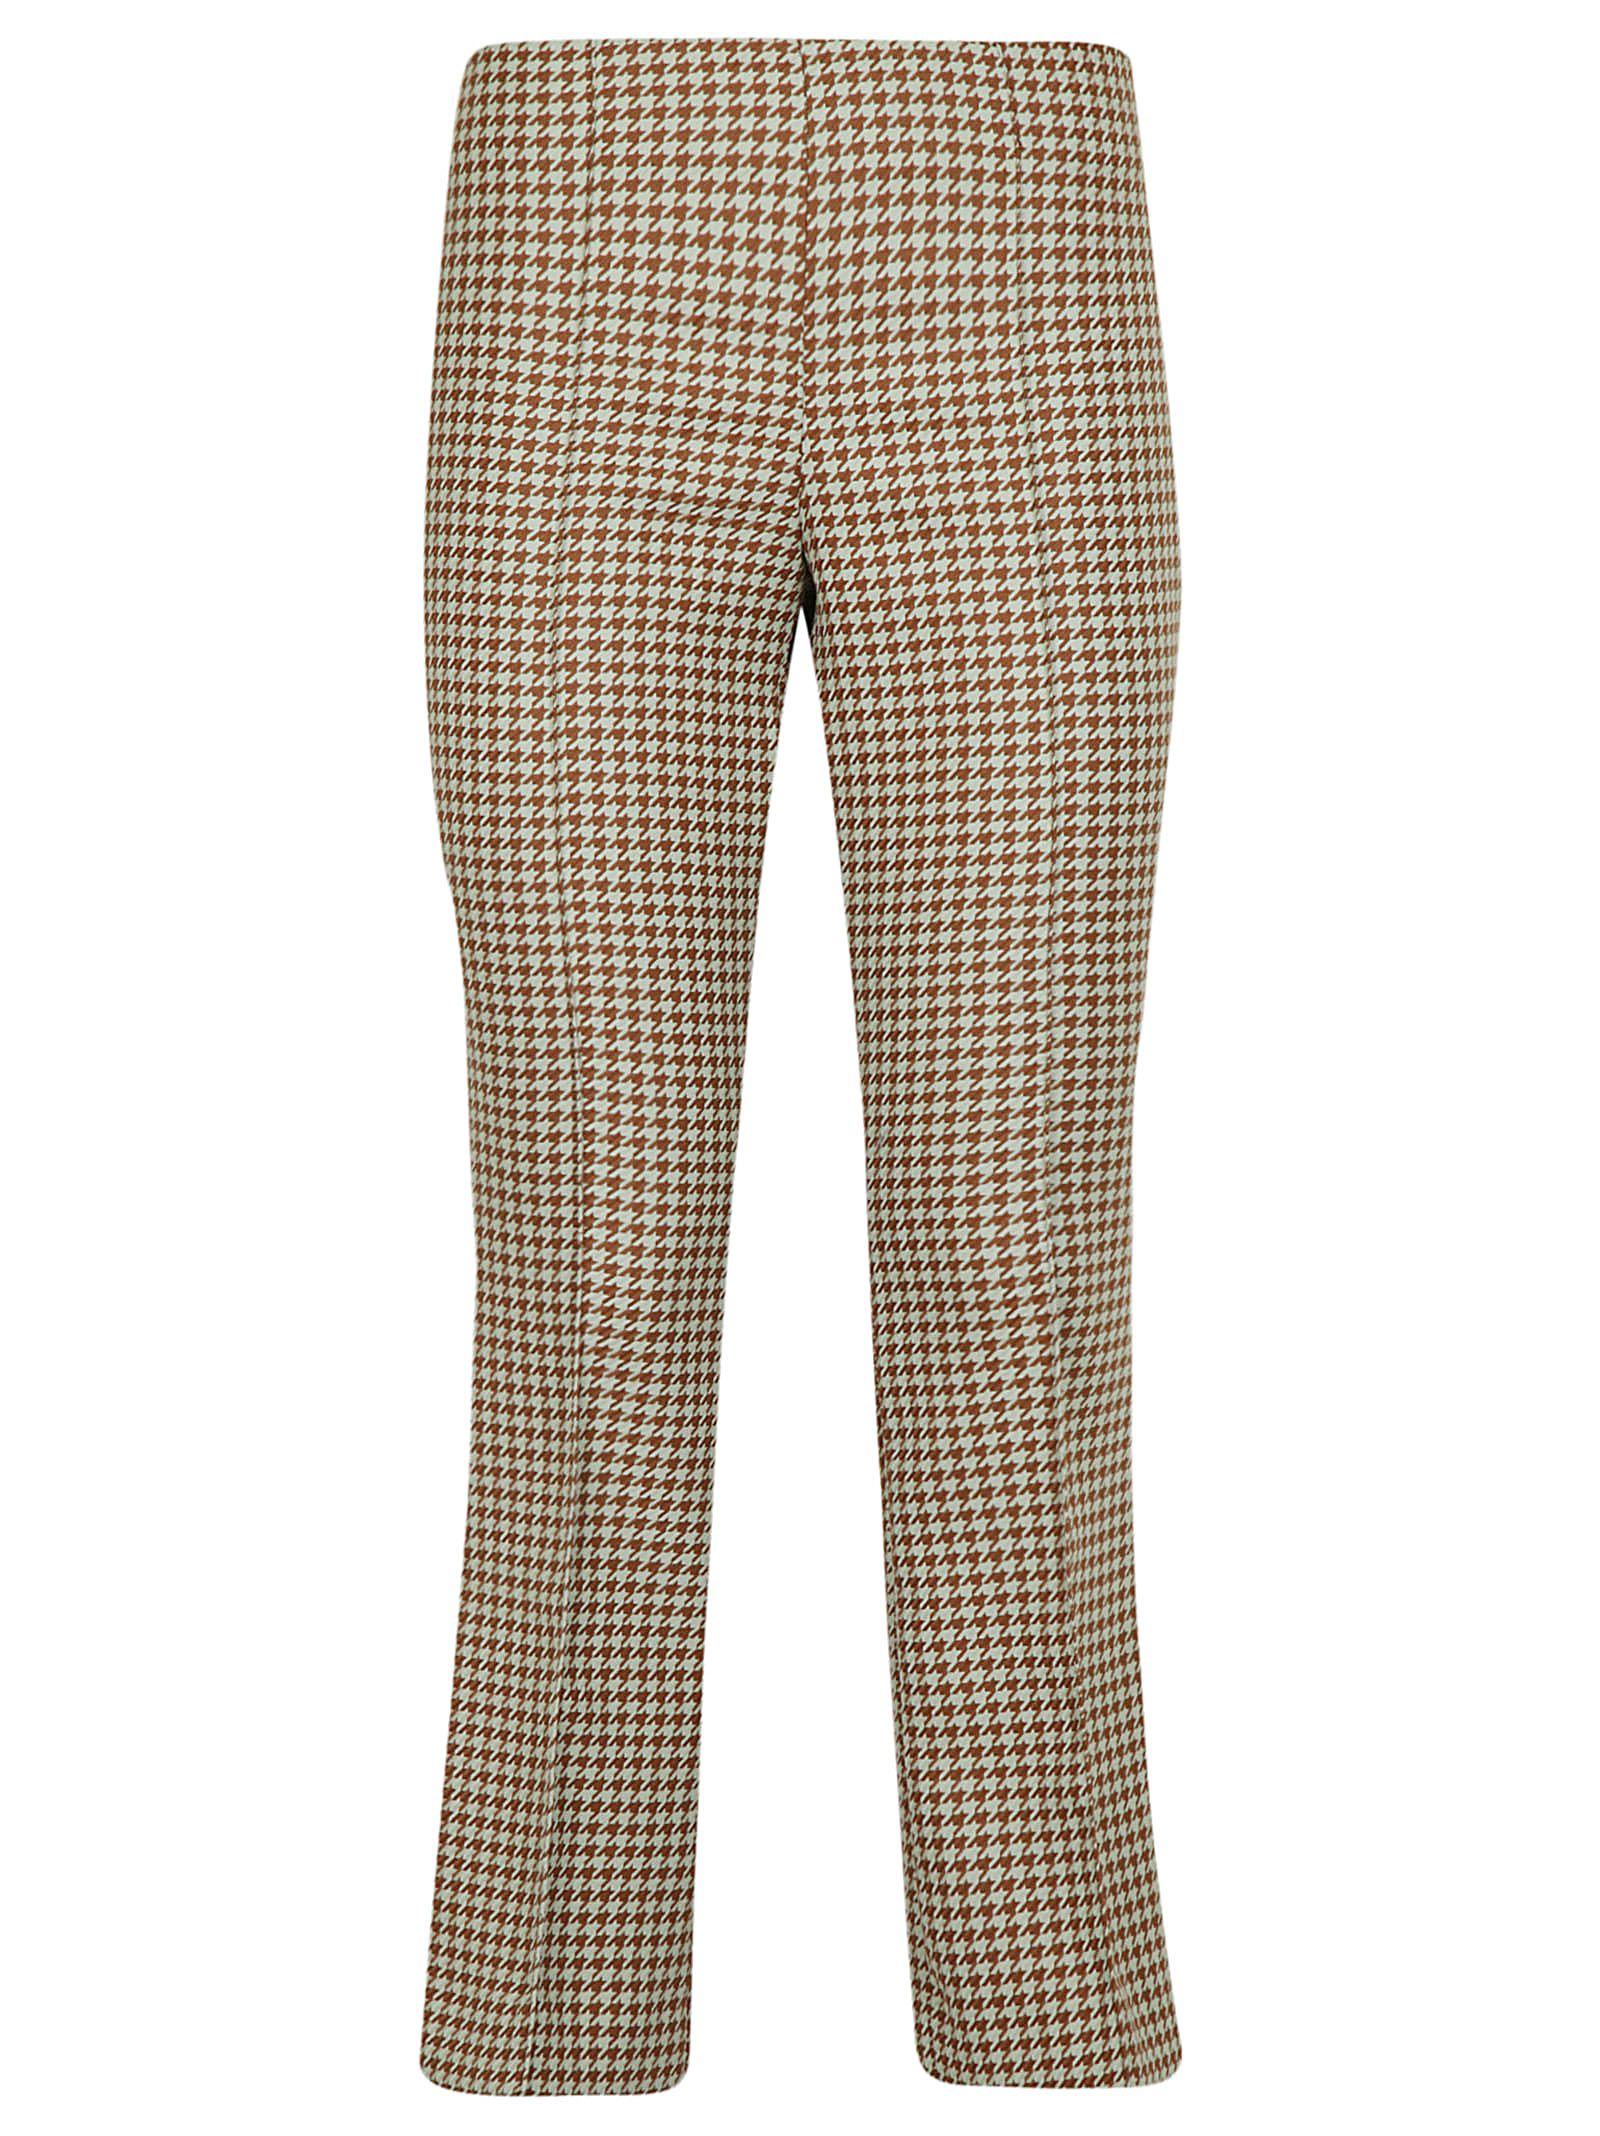 Erika Cavallini Cropped Flared Trousers